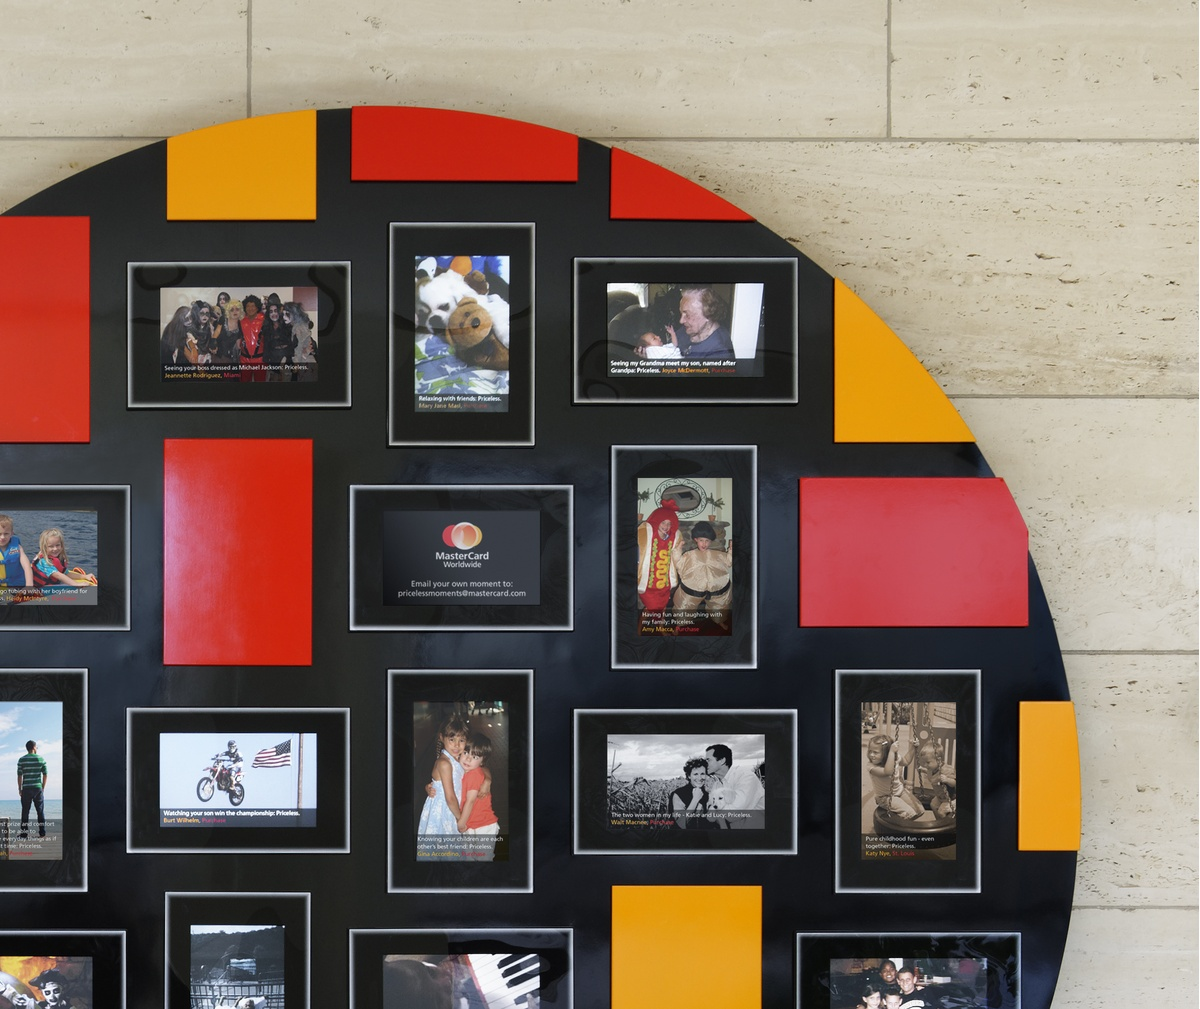 Project image 3 for MasterCard Project Spirit - Priceless Faces Wall, MasterCard Worldwide